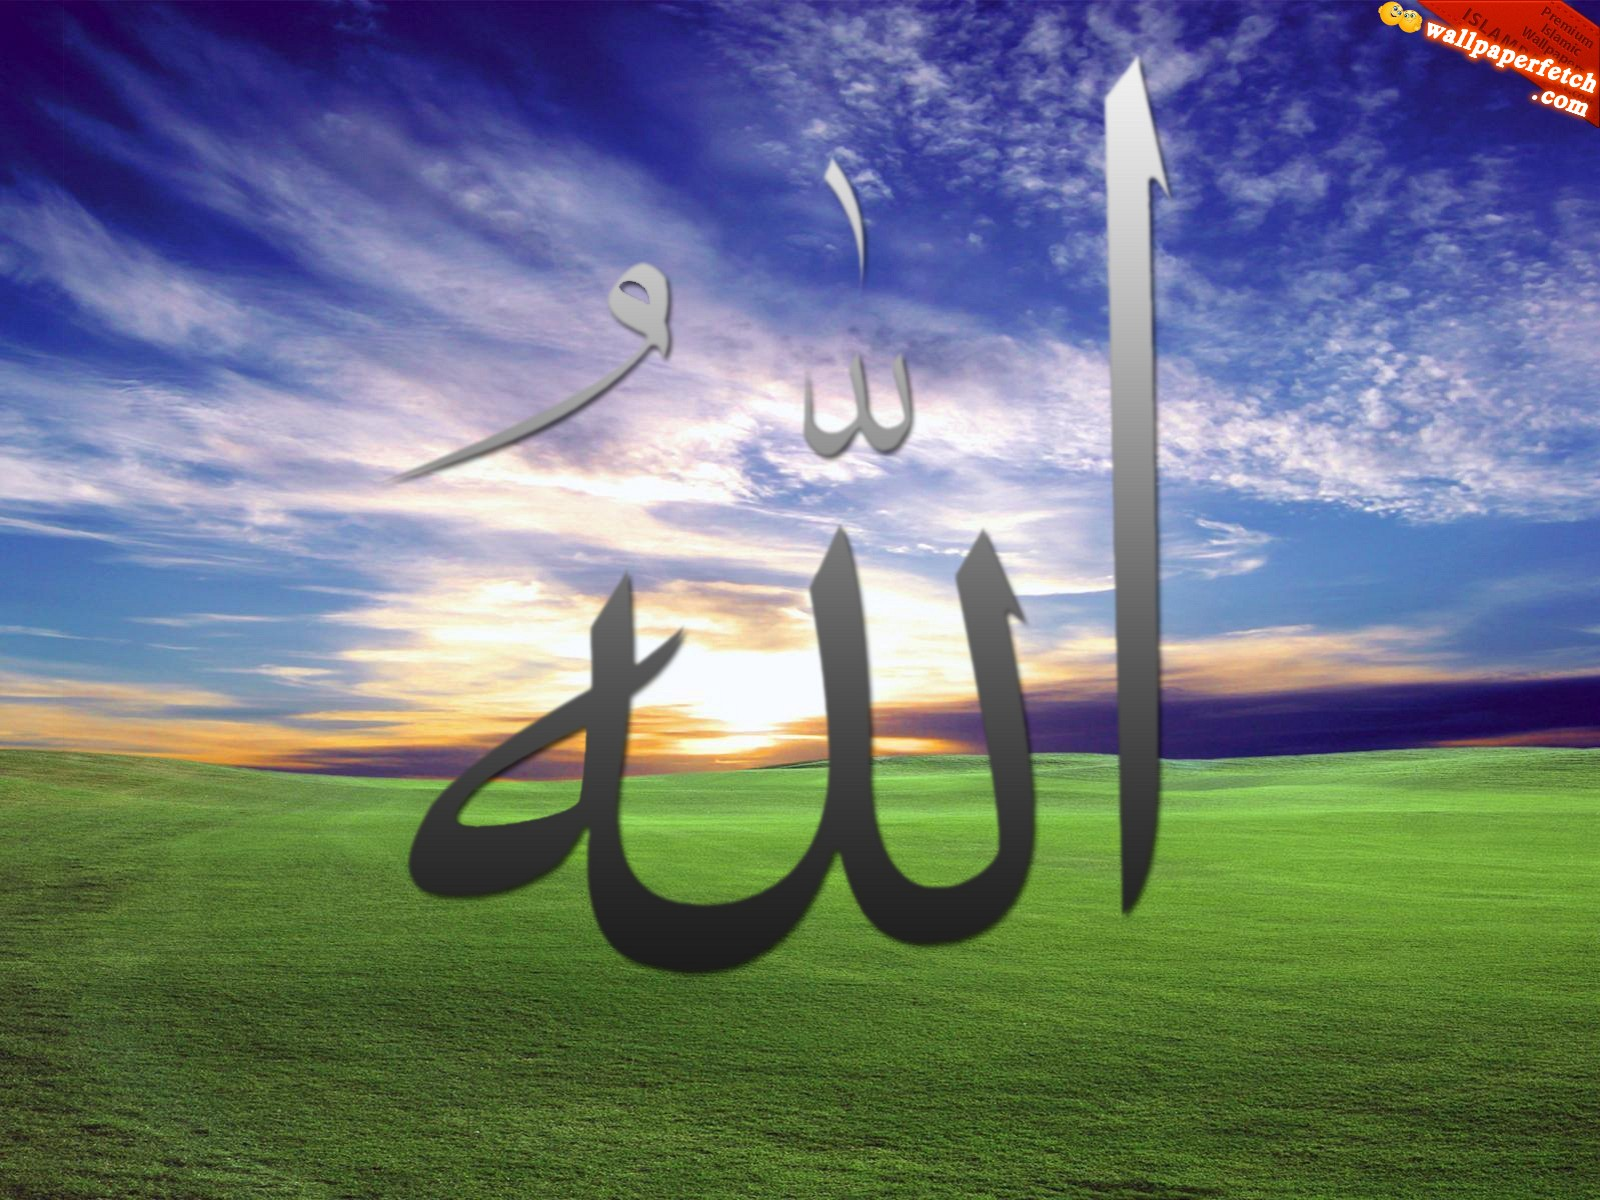 http://1.bp.blogspot.com/-D9-wCKm6_JY/T8pnpphzbyI/AAAAAAAAPSY/oLIxqGZPZH0/s1600/black-allah-wallpapers-green-windows-wallpaper.JPG